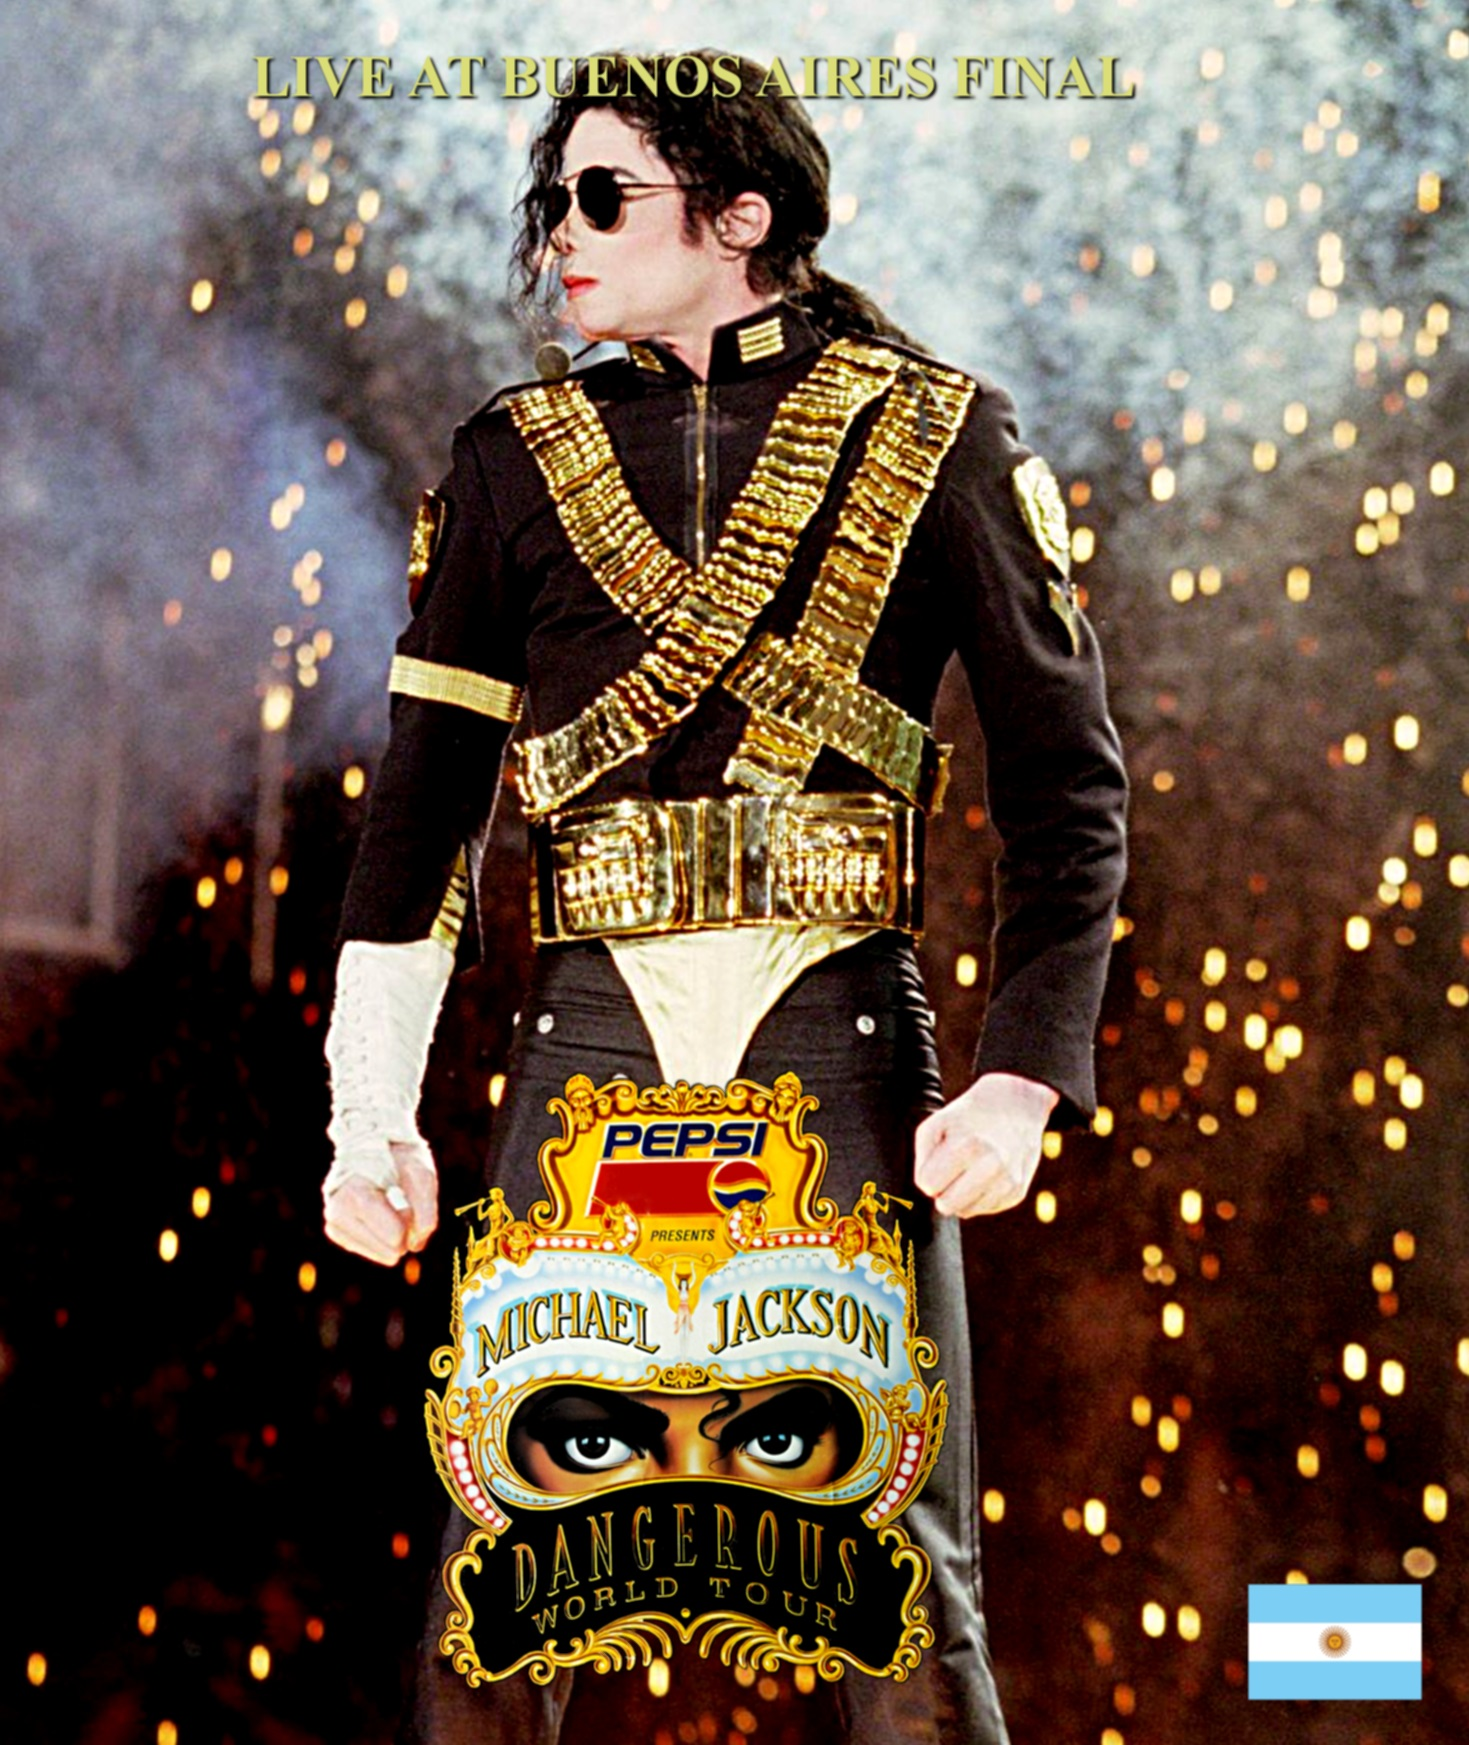 コレクターズBlu-ray  Michael Jackson - Dangerous World Tour 1993